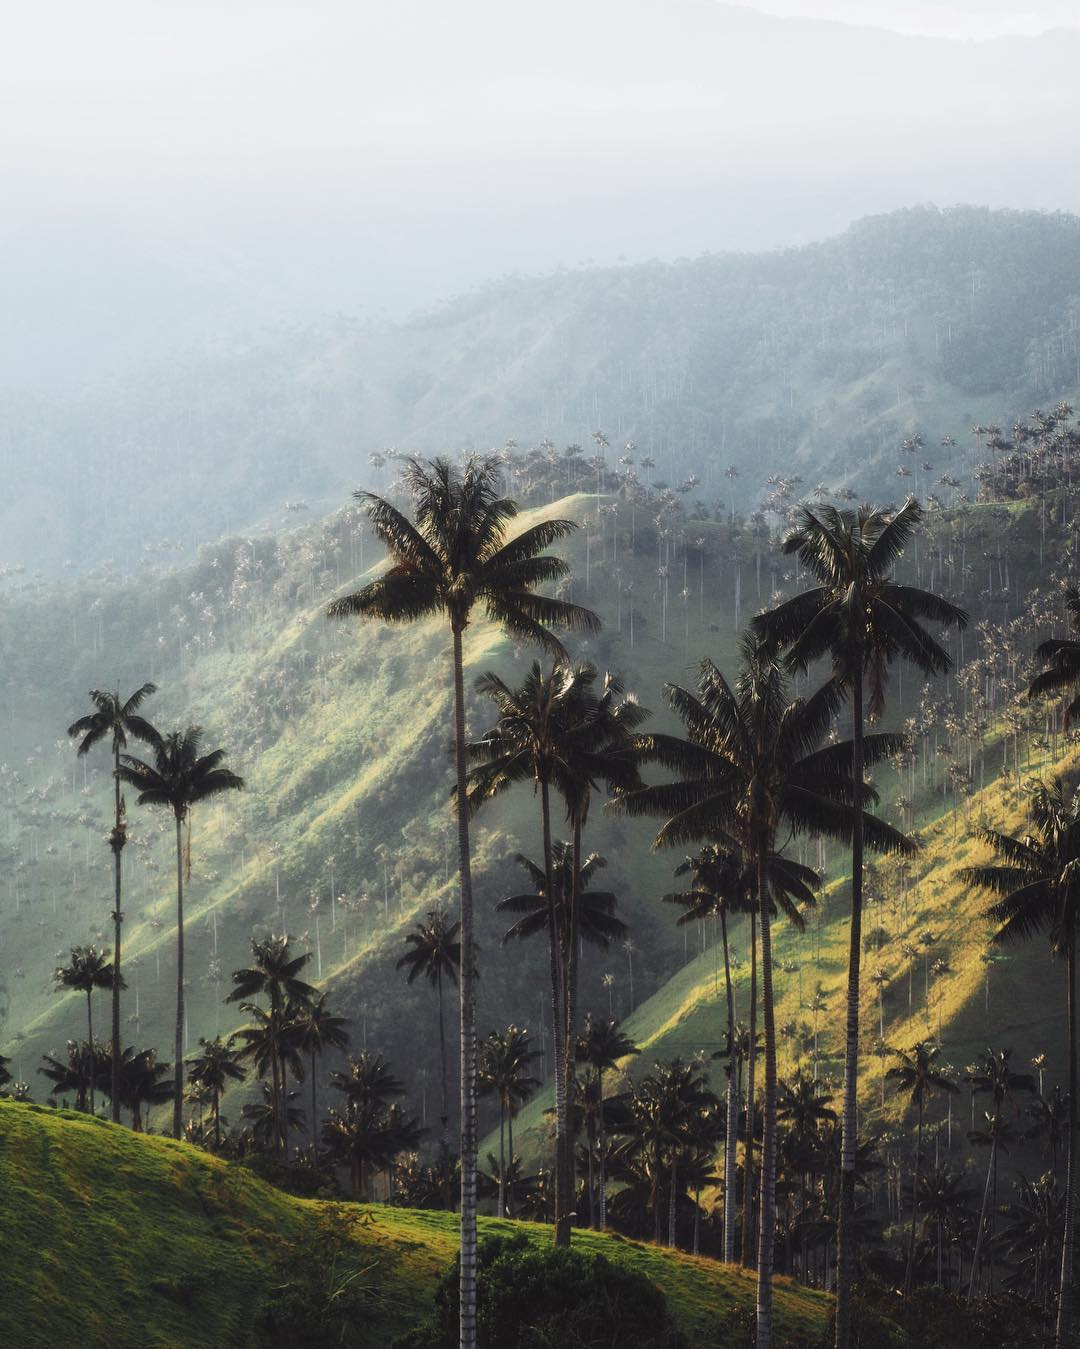 The impressive wax palms of the Cocora valley